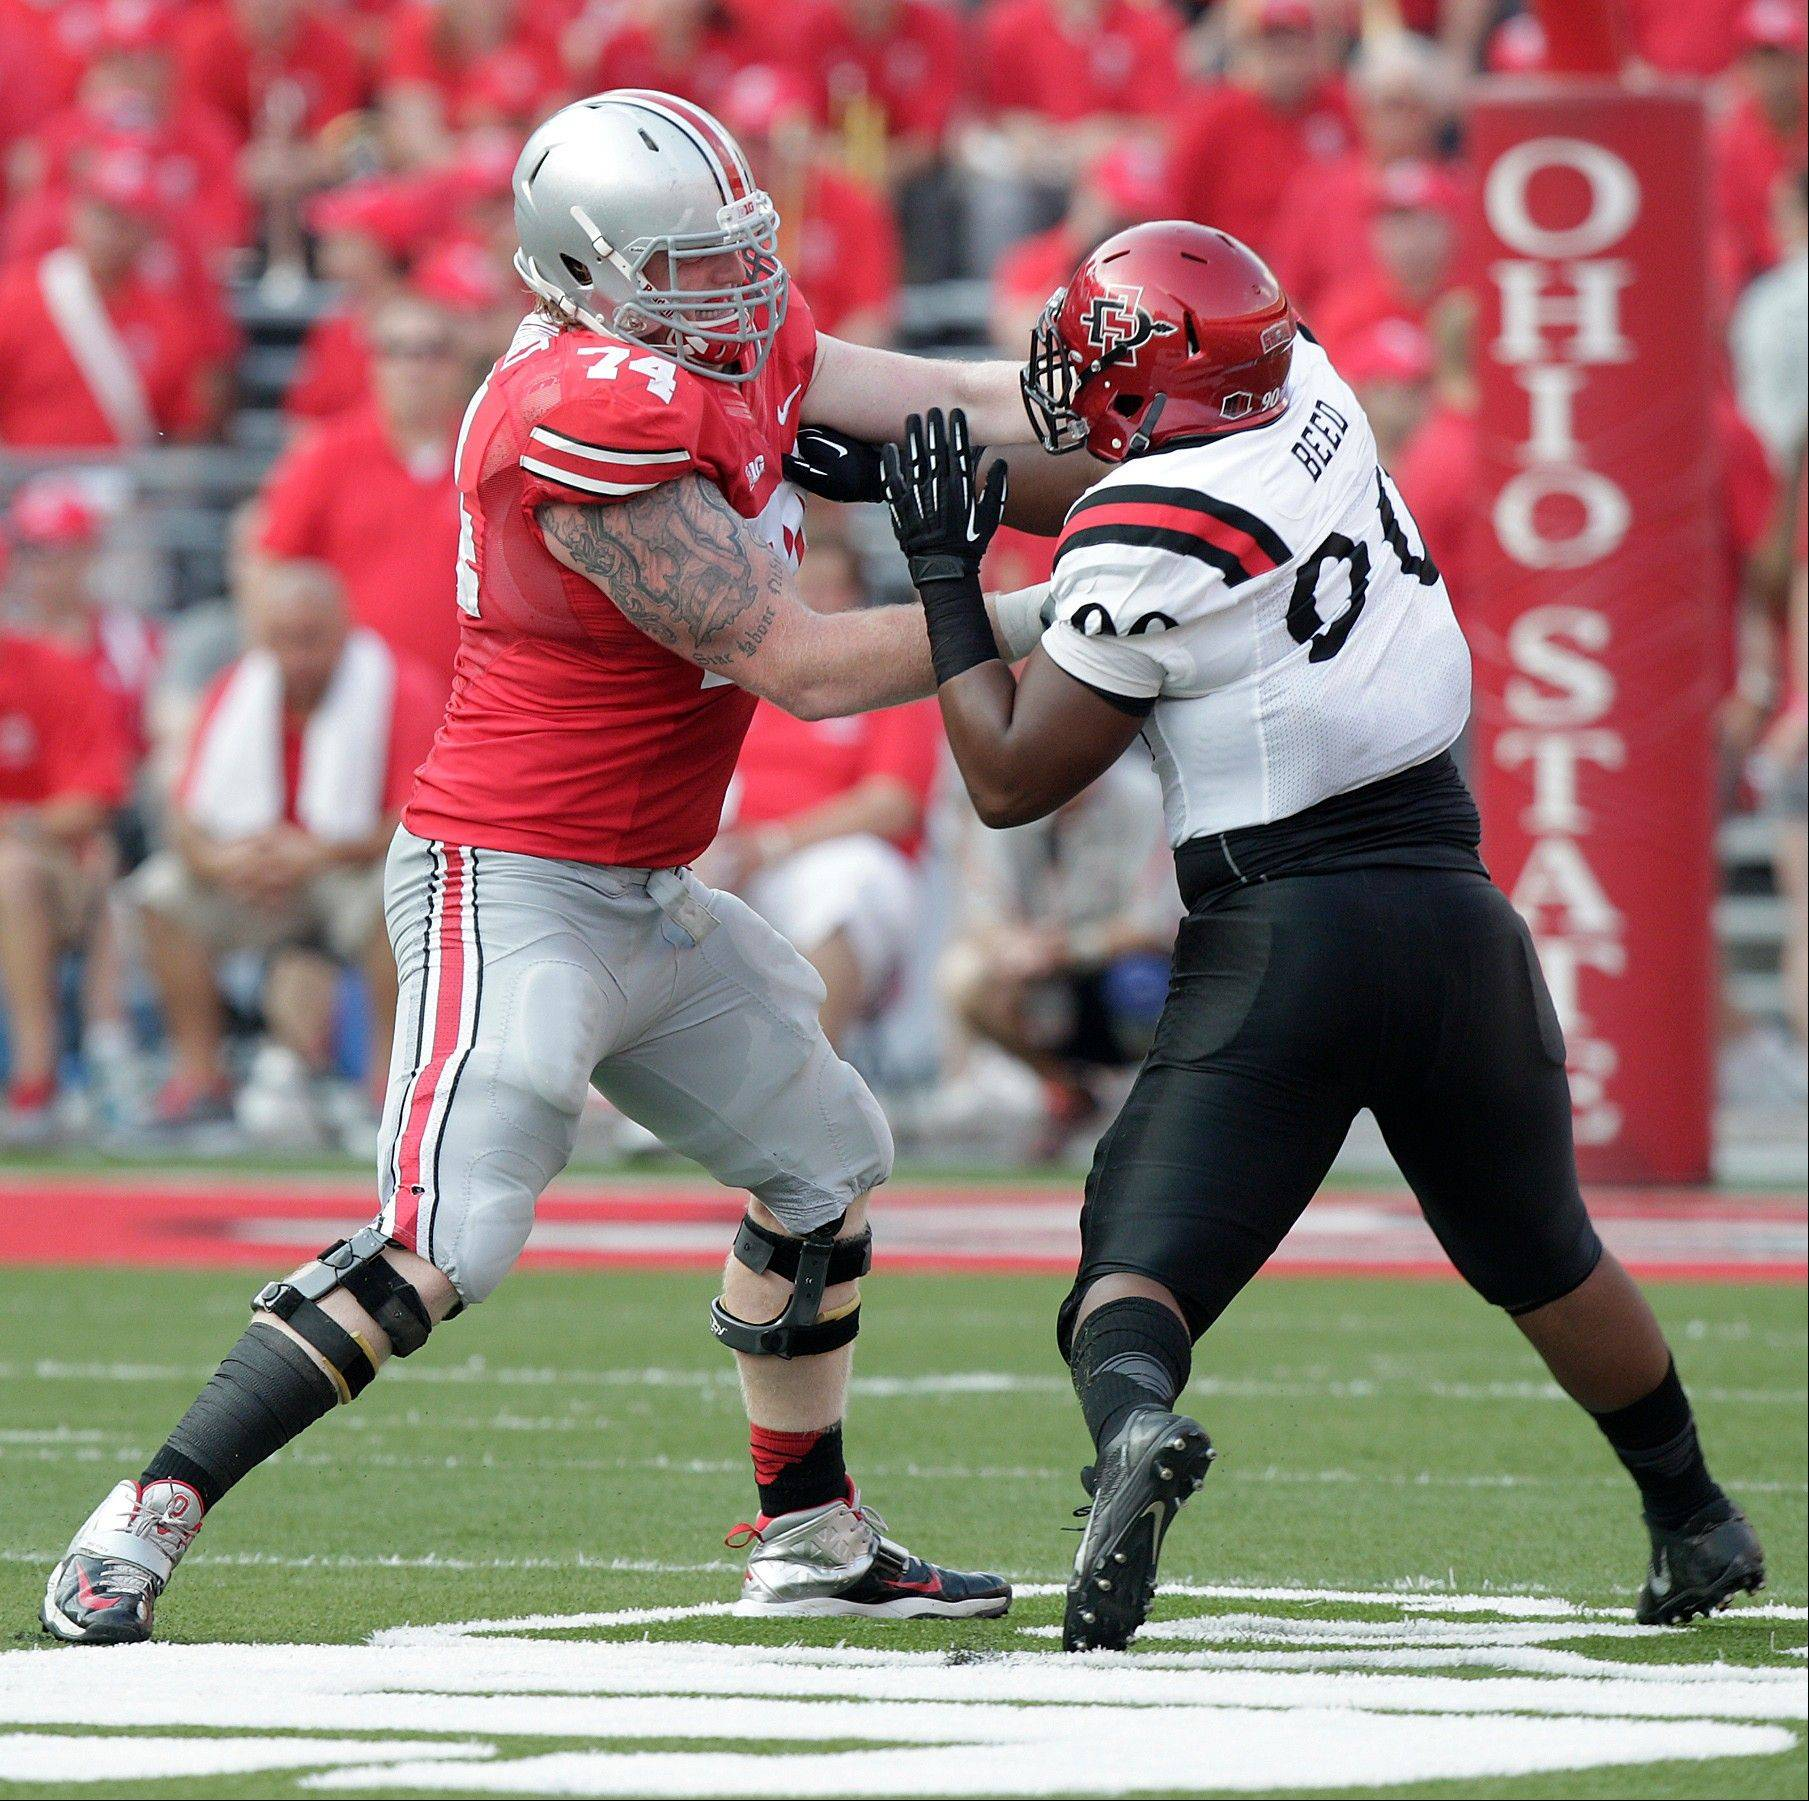 Ohio State offensive lineman Jack Mewhort blocks against San Diego State during the Sept. 7 game in Columbus, Ohio. Players on the Buckeyes' offensive line average 6-foot-6 and 310 pounds.